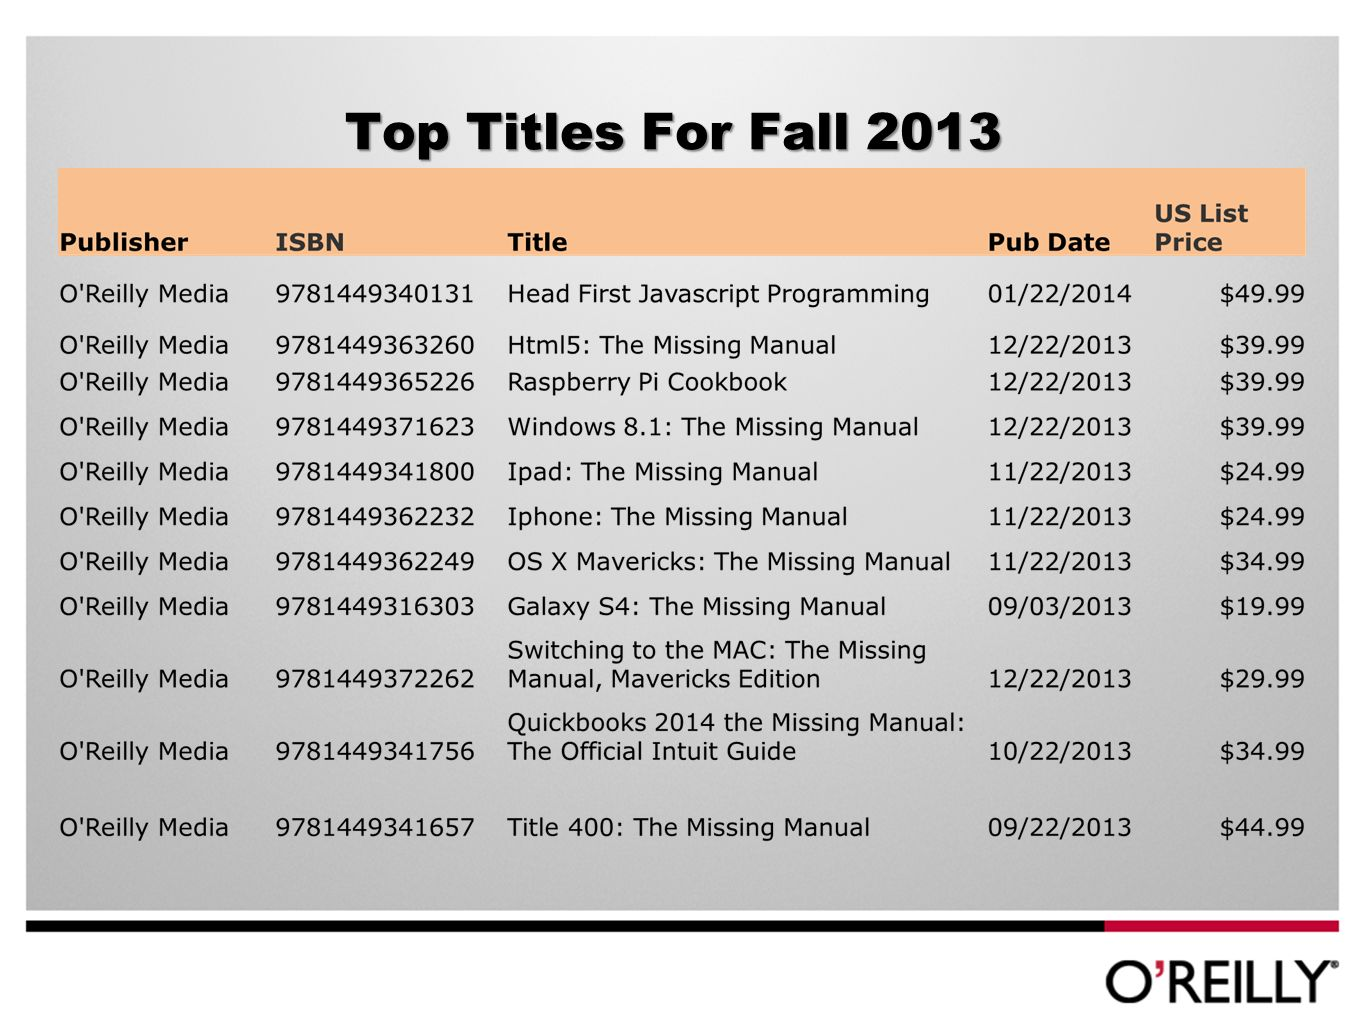 Top Titles For Fall 2013 (cont) PublisherISBNTitlePub Date US List Price Make Books9781449344047Make: More Electronics12/22/2013$34.99 Make Books9781449367084Getting Started With Sensors10/22/2013$15.99 Make Books9781457182938Make: Ultimate Guide to 3d Printing09/22/2013$19.99 Microsoft Press9780735681279Windows 8.1 Plain & Simple12/22/2013$29.99 Microsoft Press9780735681309Windows 8.1 Step by Step12/22/2013$34.99 Microsoft Press9780735683631Windows 8.1 Inside Out12/22/2013$34.99 No Starch Pr9781593275211Lego Space: Building the Future10/22/2013$24.95 No Starch Pr9781593275334The Lego Mindstorms Ev3 Book10/22/2013$29.95 Rocky Nook9781937538279Mastering Photoshop Layers11/28/2013$44.95 Rocky Nook9781937538354Capture the Magic11/28/2013$39.95